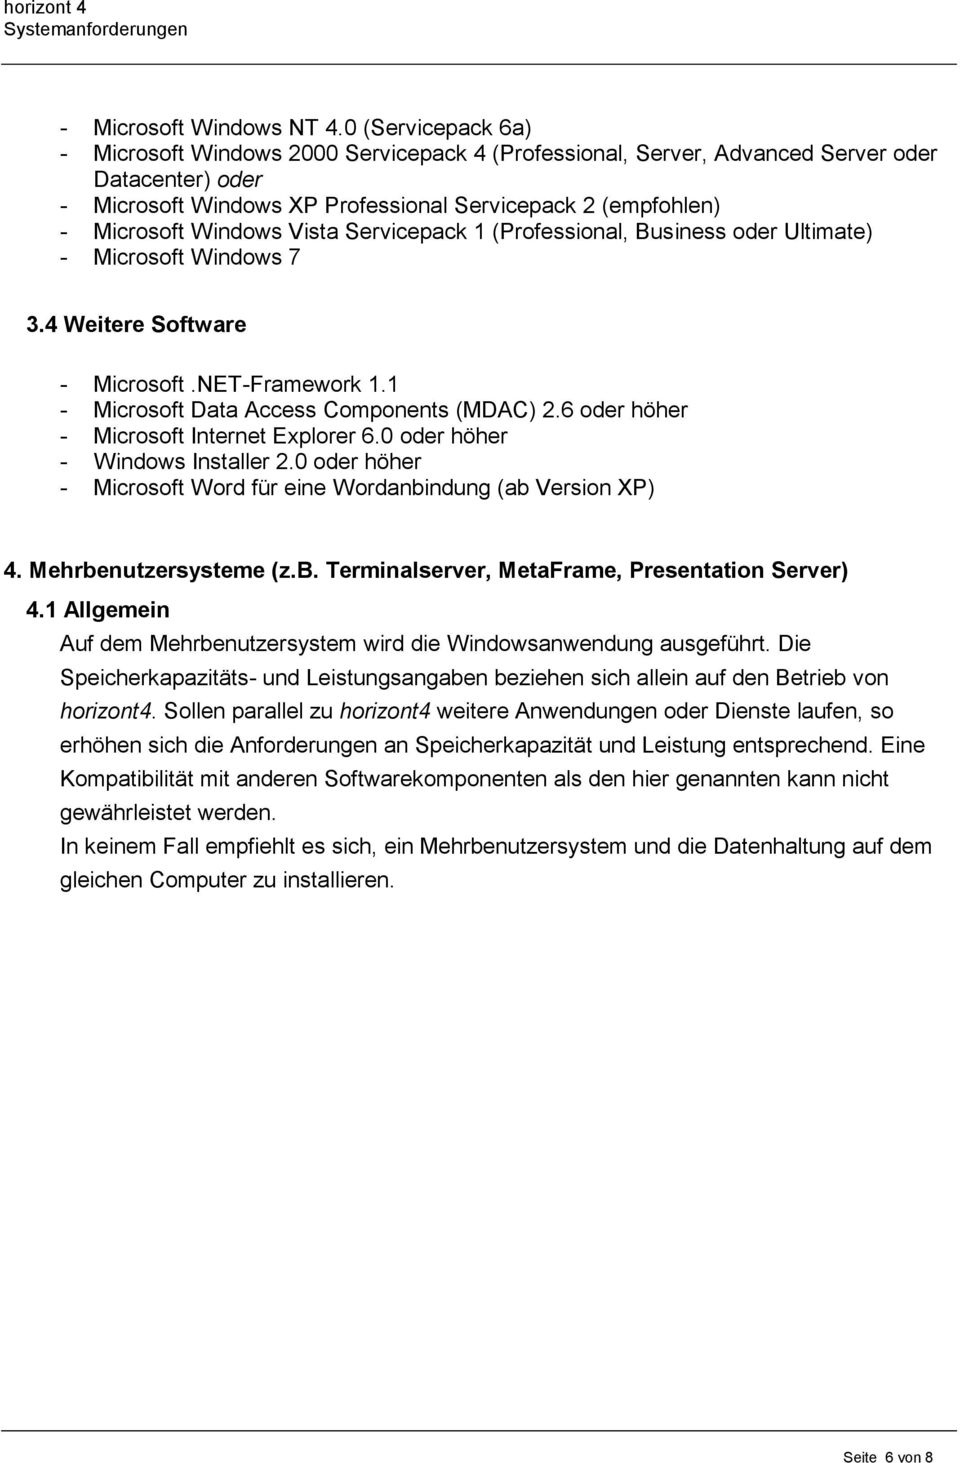 Windows Vista Servicepack 1 (Professional, Business oder Ultimate) - Microsoft Windows 7 3.4 Weitere Software - Microsoft.NET-Framework 1.1 - Microsoft Data Access Components (MDAC) 2.